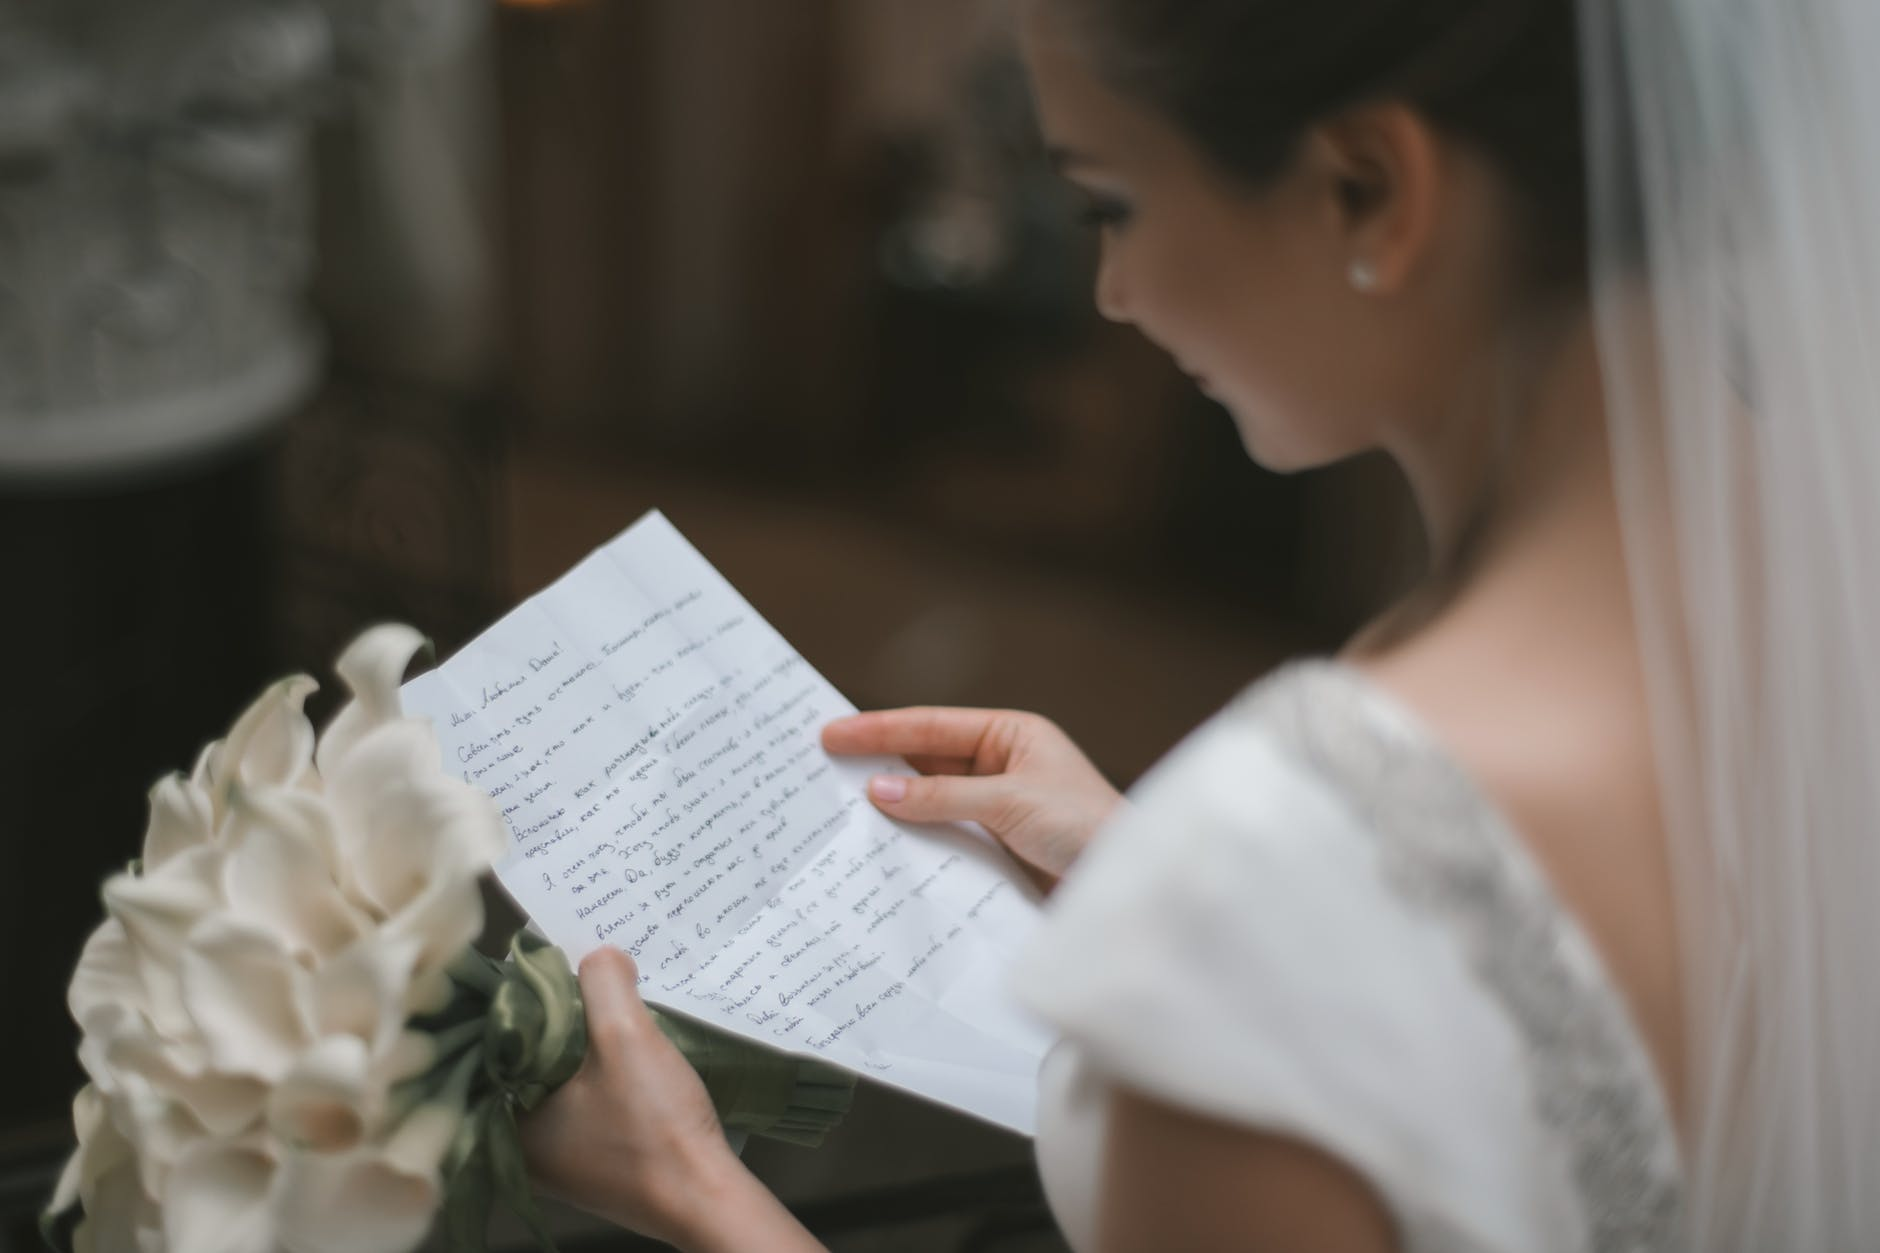 bride with bouquet and wedding vow in hands